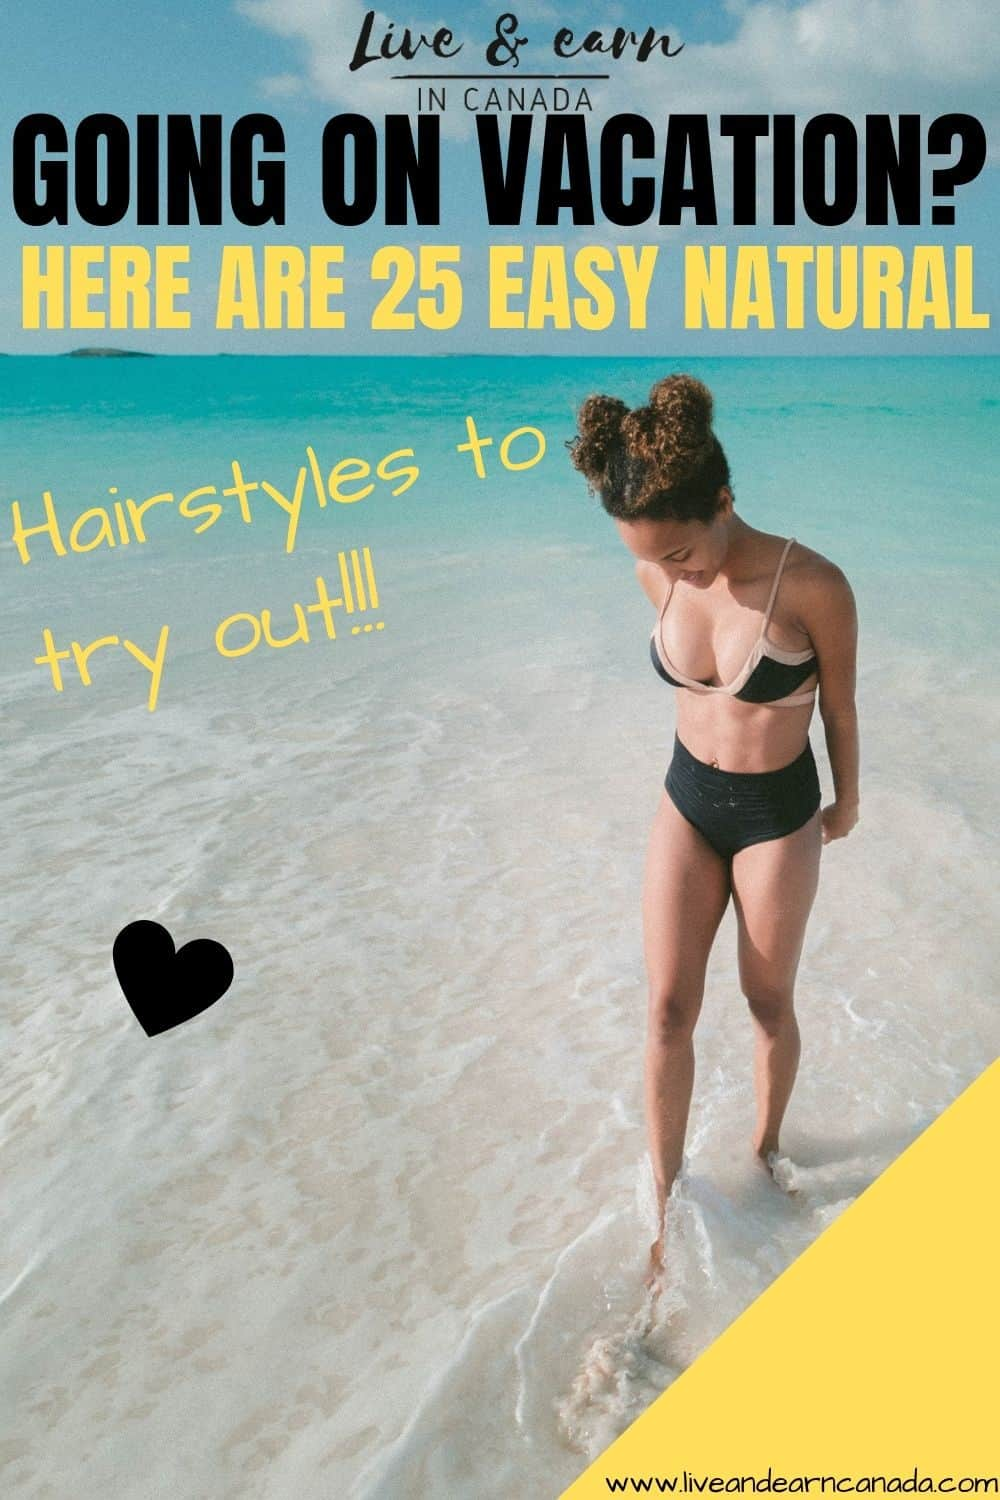 here a few natural hairstyles for the beach to try out! What are some of the best natural hairstyles for swimming? Here is a list of the best natural hairstyles for black women that are going on vacation. Here is how to take care of your natural hair while on vacation by wearing protective styles like crochet braids, cornrows and more #naturalhair #protectivestyle